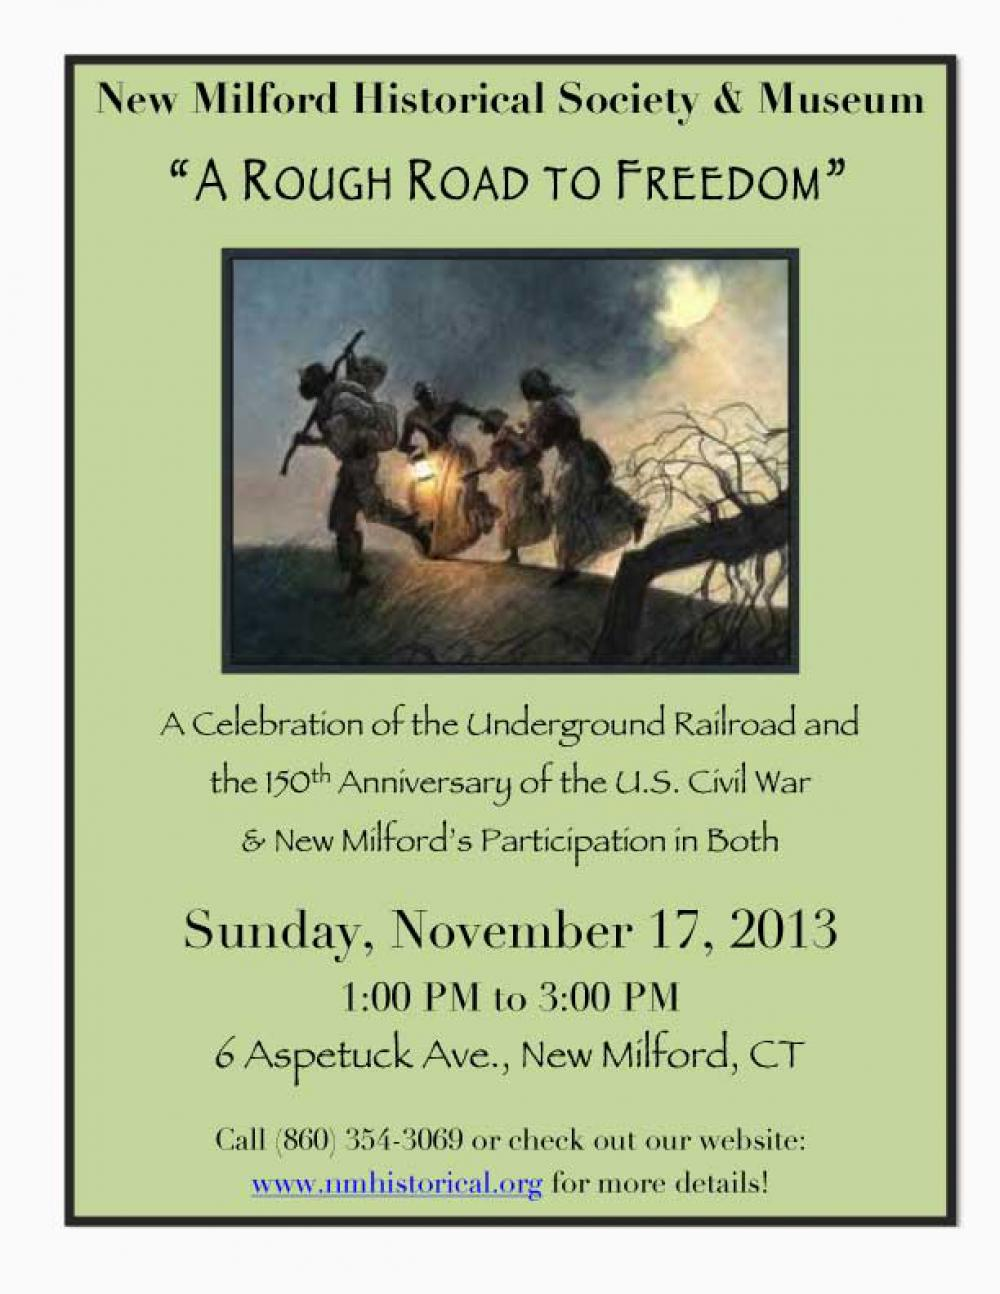 """The New Milford Historical Society will hold a special day of events on Sunday, November 17th in front of the Lincoln Memorial at the north-end of the New Milford Green.  This event will be called """"A Rough Road To Freedom"""".  We would like to invite you to come and join us.  12:30 PM — Assemble on the sidewalk at the top of the Green for the start of the program.  There will be singing of 'Old-Time Gospel Hymns'.  1:00 PM — The opening ceremony will commence with speeches given by the honored guests, followed by the unveiling of the """"A Rough Road To Freedom"""" Sculpture.  This sculpture was designed by and donated to the Town of New Milford by local artist, Ray Crawford.  1:30 PM — 2:15 PM (Inside the Museum) — Howard Wright, a Lincoln Impersonator, will read the Gettysburg Address and the recitation of the Emancipation Proclamation, as well as readings from Lincoln's letters and papers of 1863.  Ray D. Smith, a Civil War Re-enactor, will stand in his Civil War Uniform as the Honor Guard to Lincoln.  2:15 PM — 3:00 PM — Kathleen Zuris will give a talk on the 29th Connecticut Colored Regiment.  There were at least twelve New Milford men in this Regiment.  This is their 150th Anniversary.  3:00 PM — Refreshments will be served along with the opening of the new exhibit, """"Black Life in History of New Milford"""".  Also, in honor and in memory of our Military Veterans who have served and are actively serving our country today, the Kiwanis Club Foundation of Greater Danbury, Inc. will erect a Field of Honor around the Lincoln Memorial with 300 full size (3 X 5) American Flags on November 2nd.  These flags will be on display through December 7, 2013.  We hope you can join us on this special day.  Please RSVP by calling the Historical Society at:  860.354.3069"""